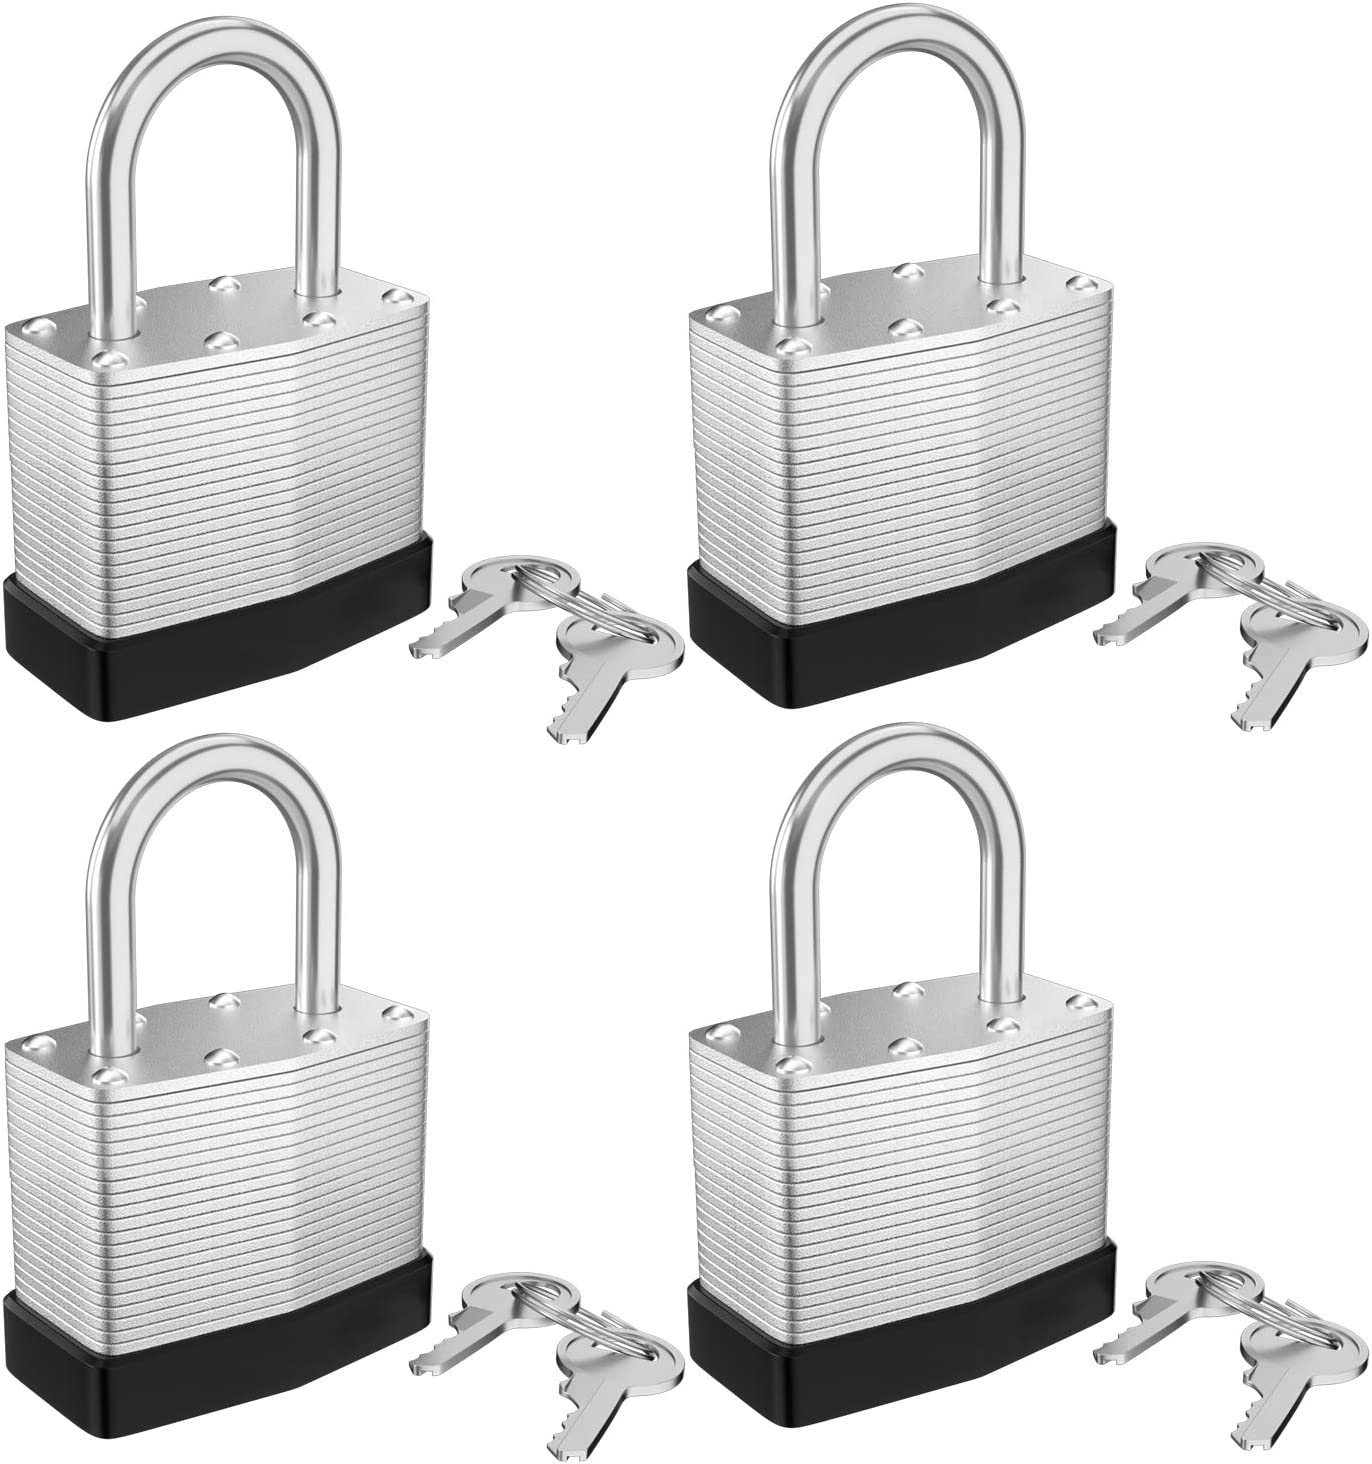 KECHUANG Key Padlock Limited time trial price Laminated Ranking TOP9 Steel Hitch 16